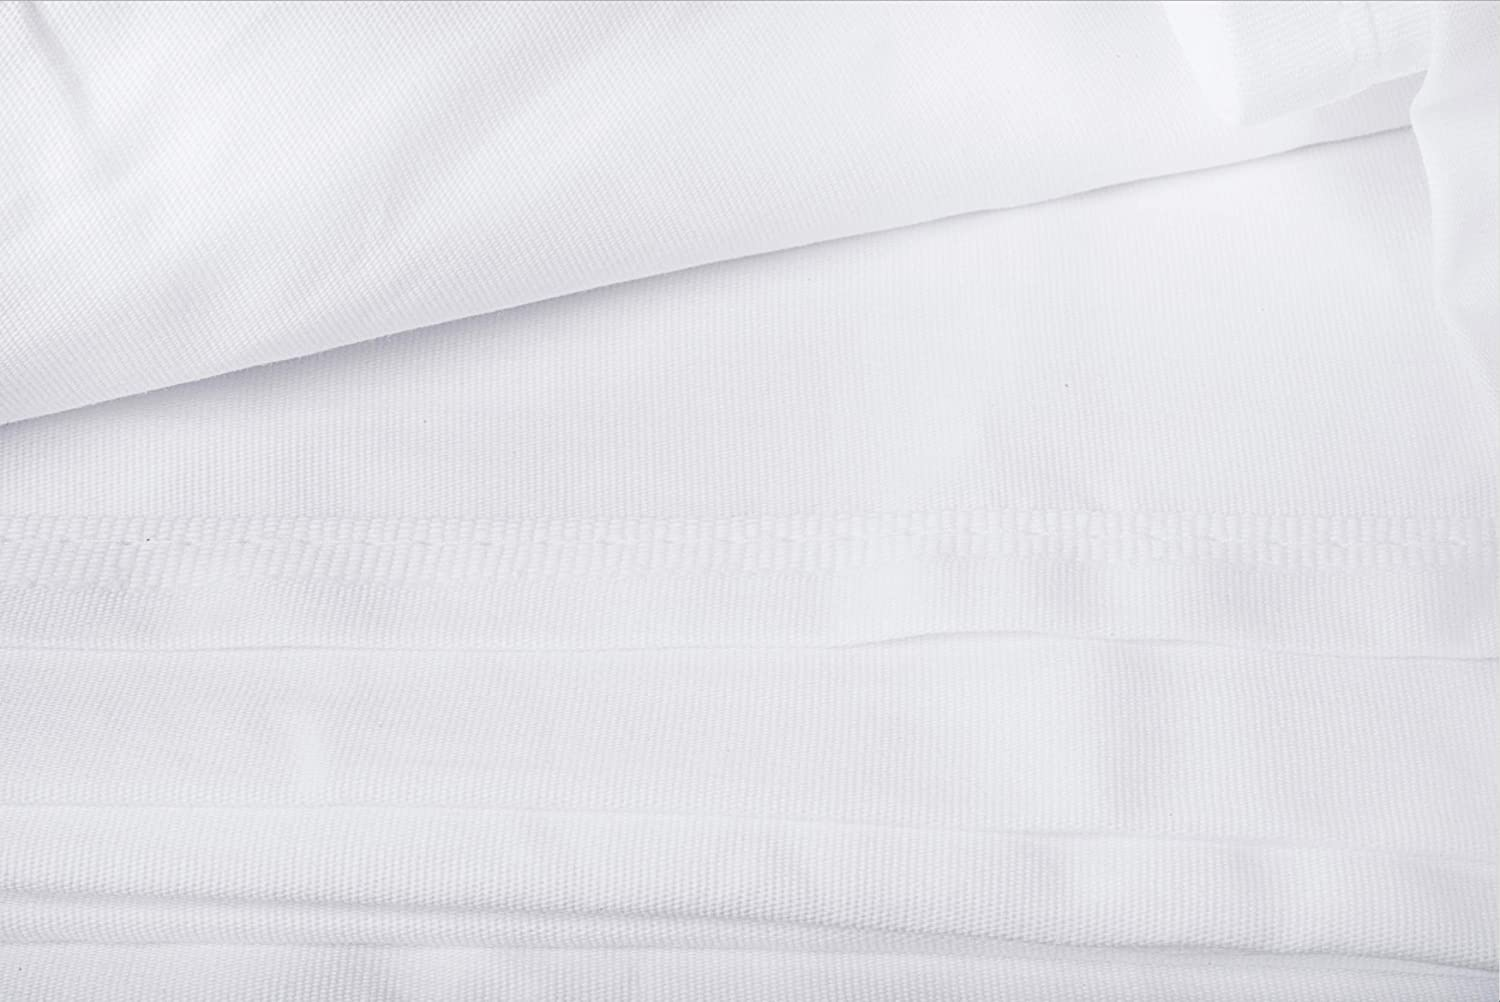 1-Pack, 66x104 in, White Twin Flat Sheets Linteum Textile 200 Thread Count